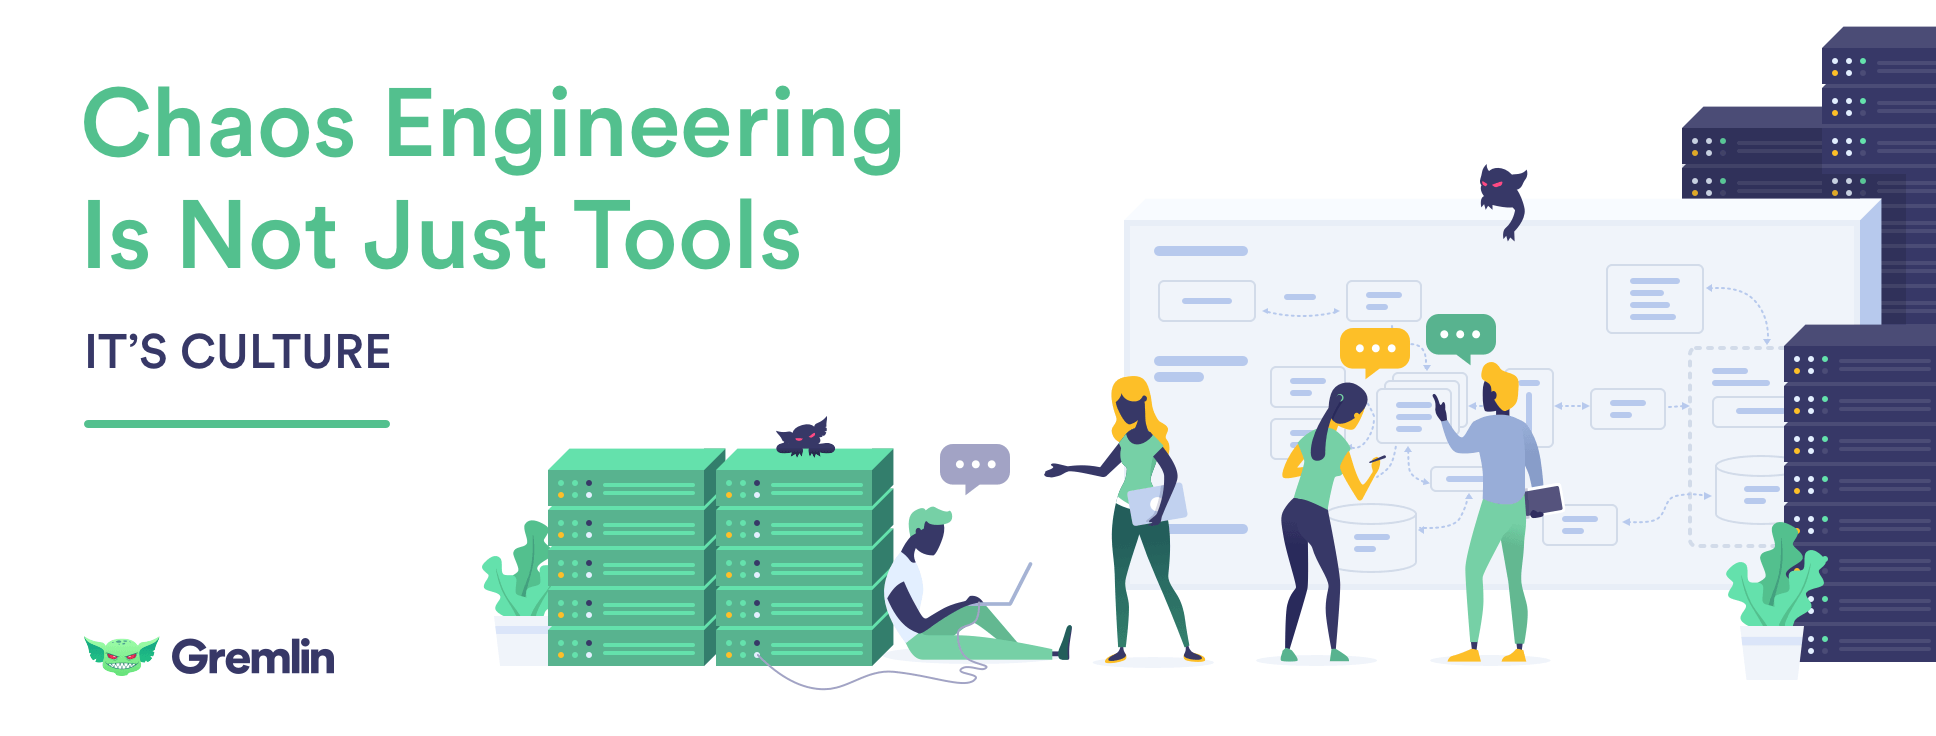 Chaos Engineering is Not Just Tools—It's Culture